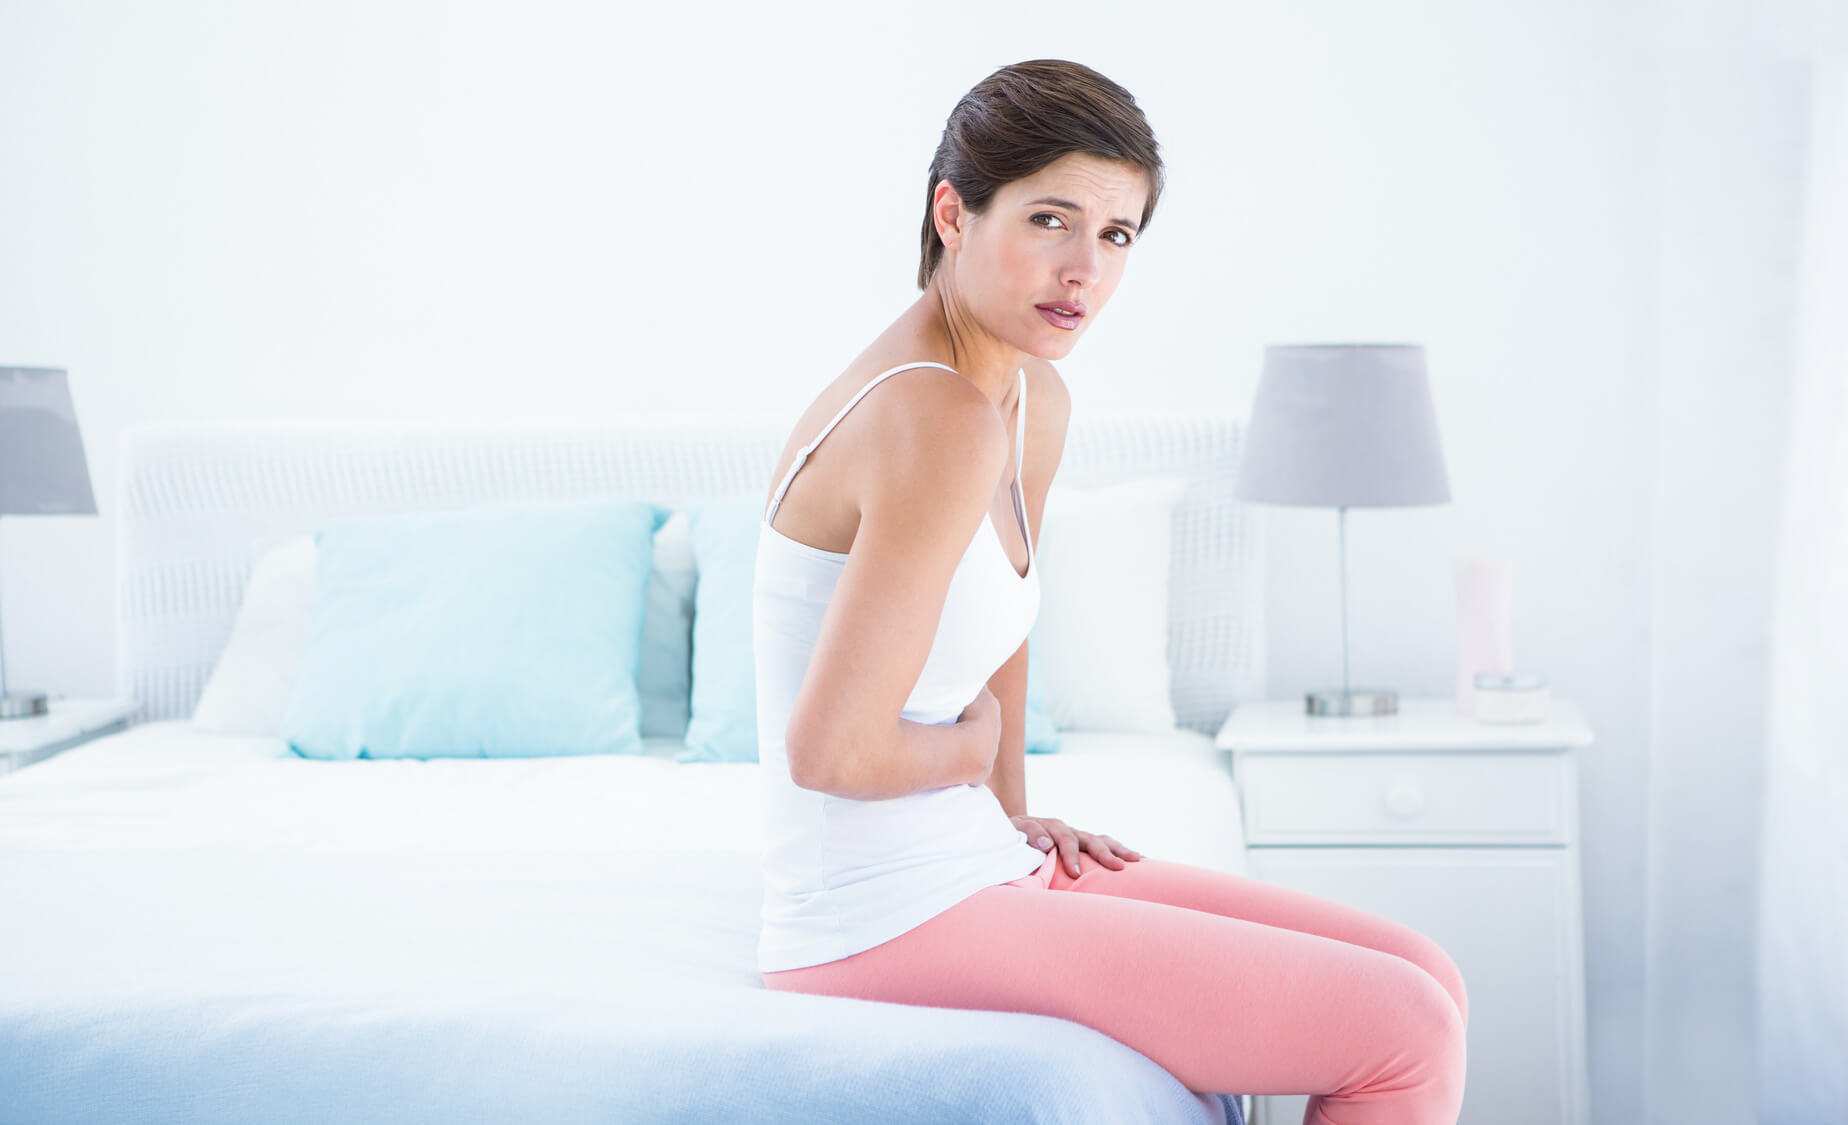 Ablation can help reduce abnormal pain with your period and heavy bleeding.